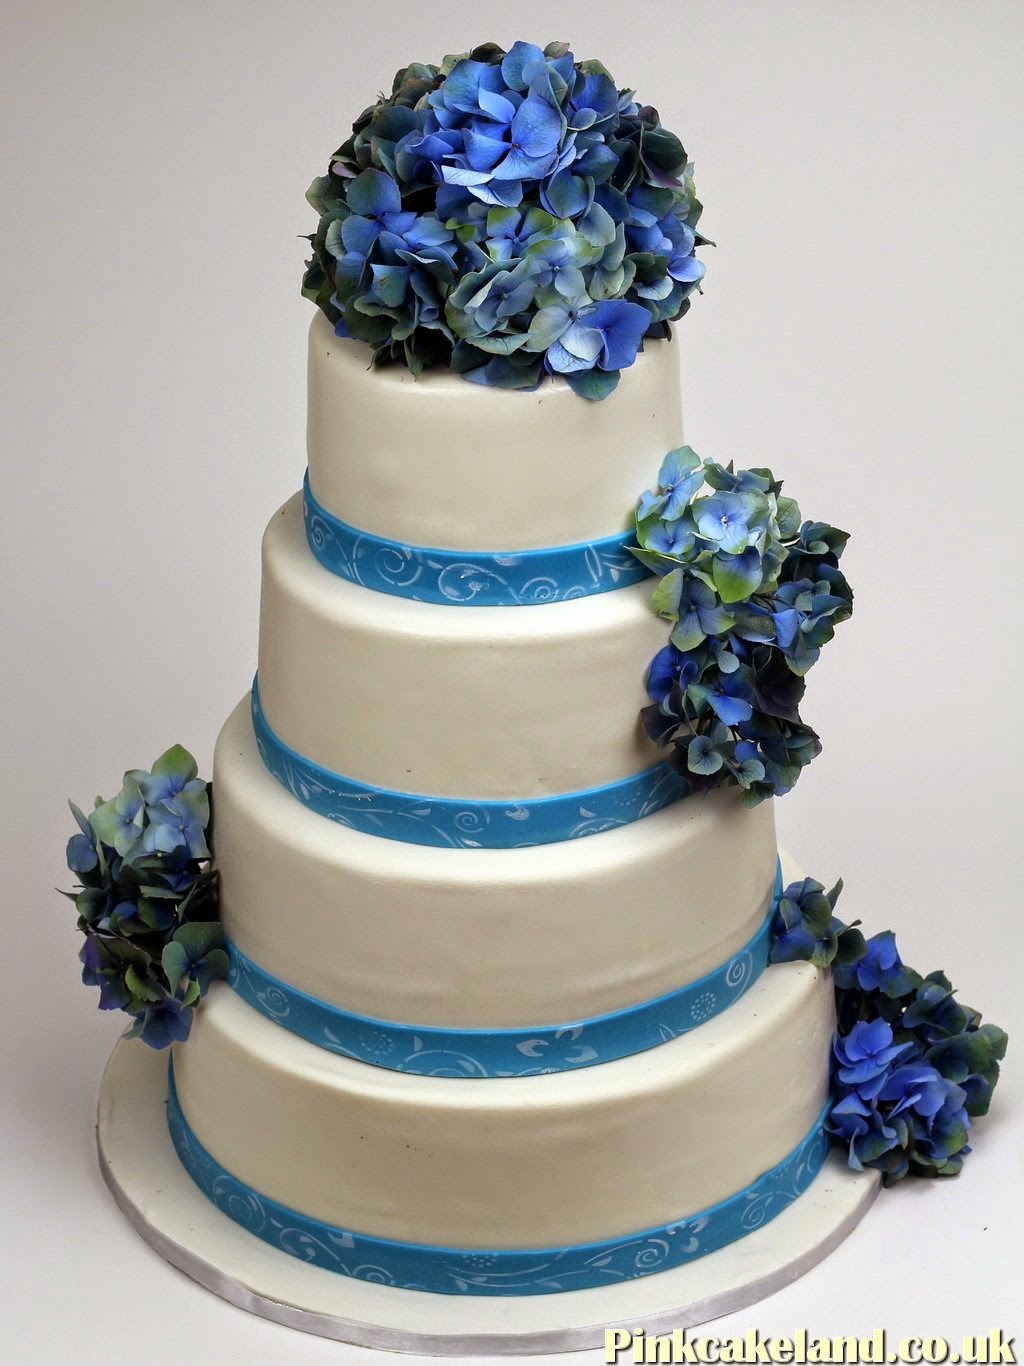 Best Wedding Cakes in Brixton, London UK